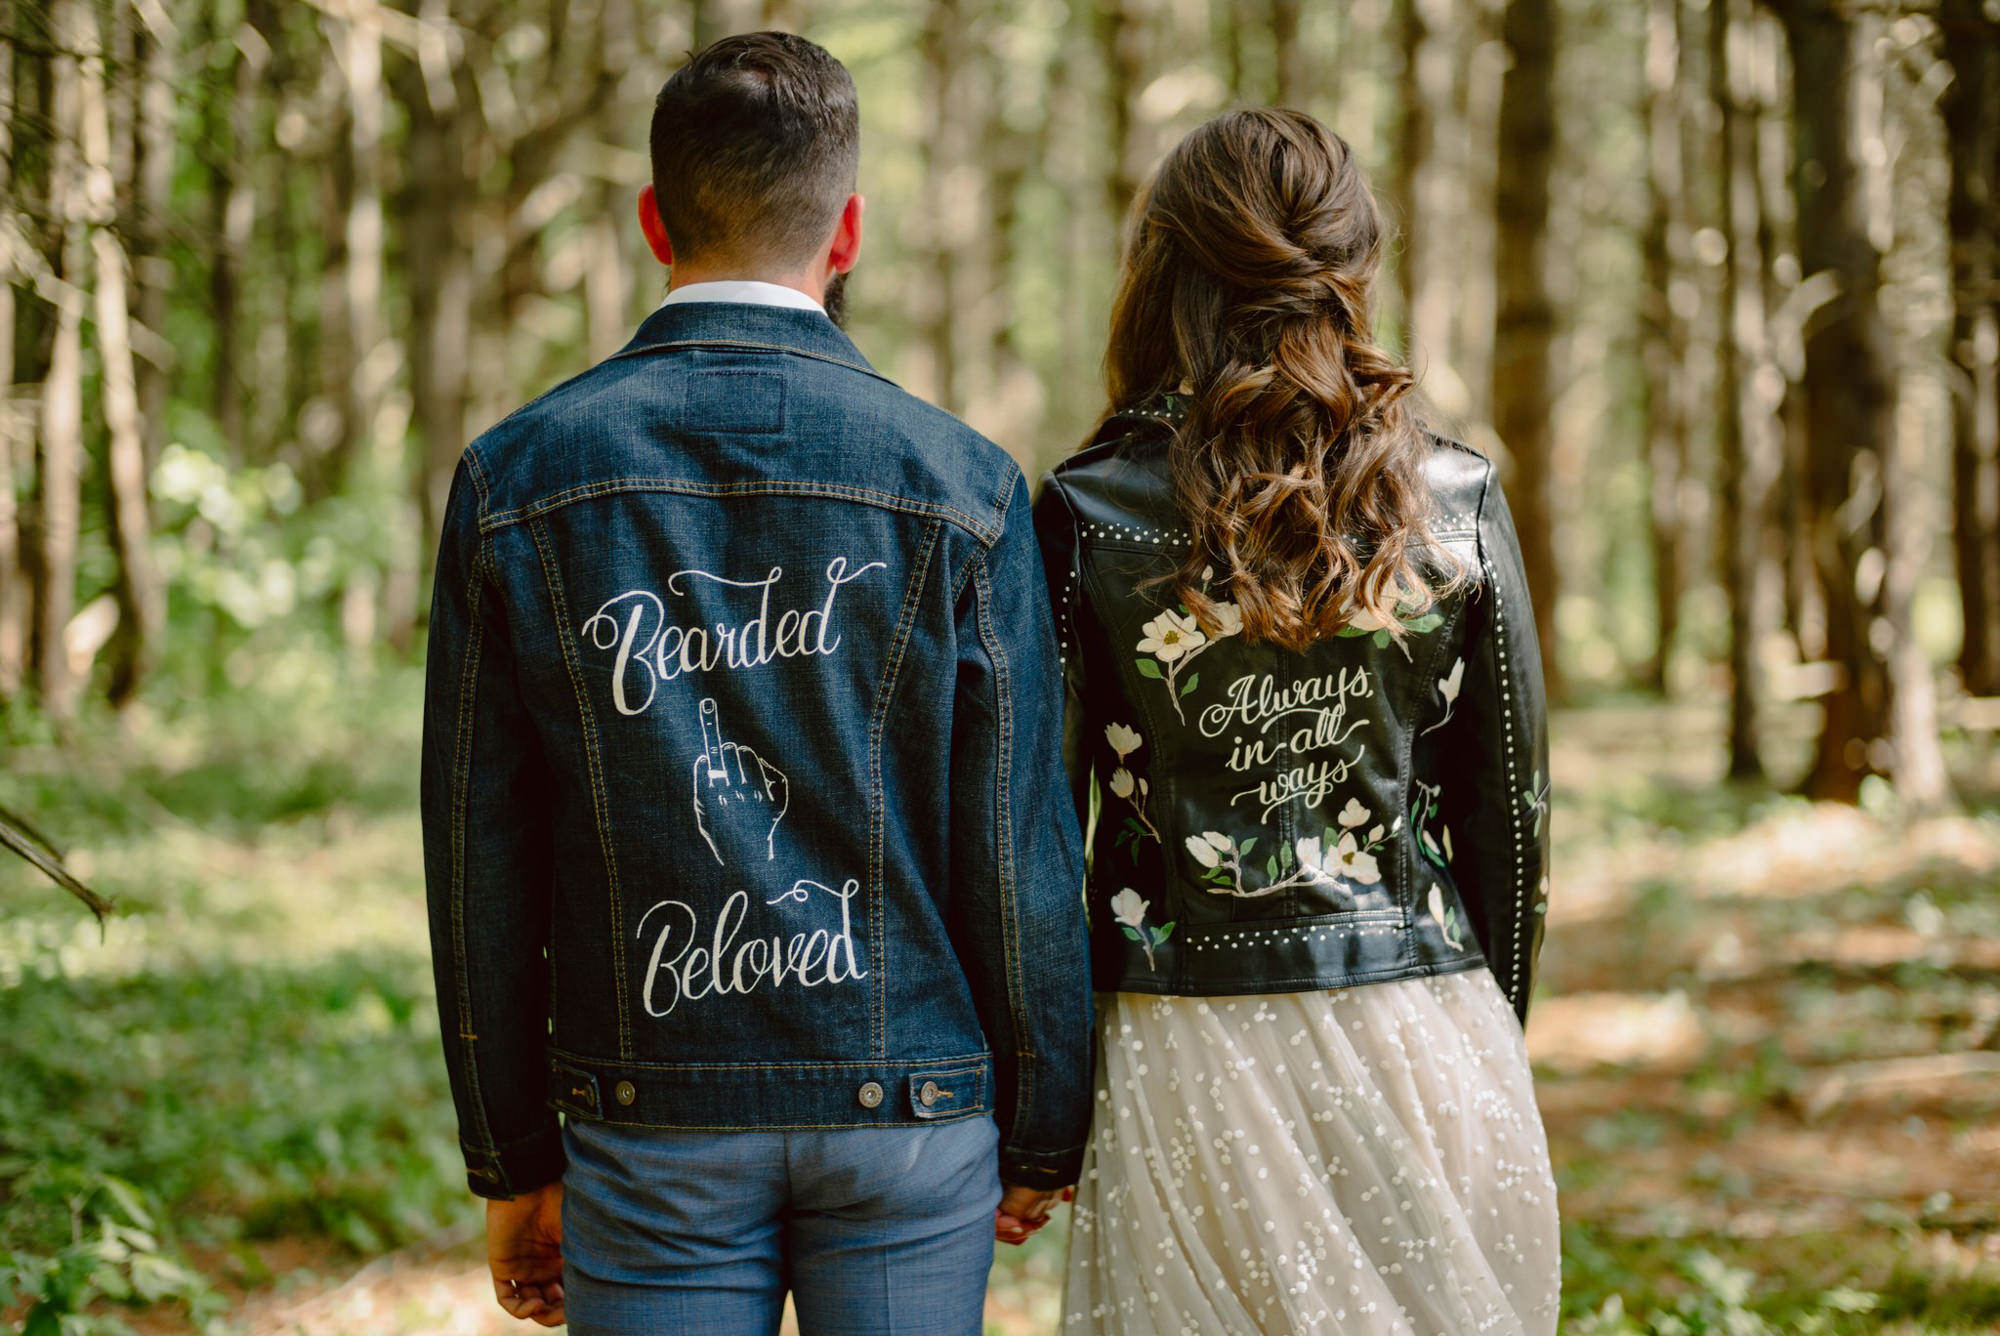 Denim and leather personalized wedding jackets - photo by Benj Haisch